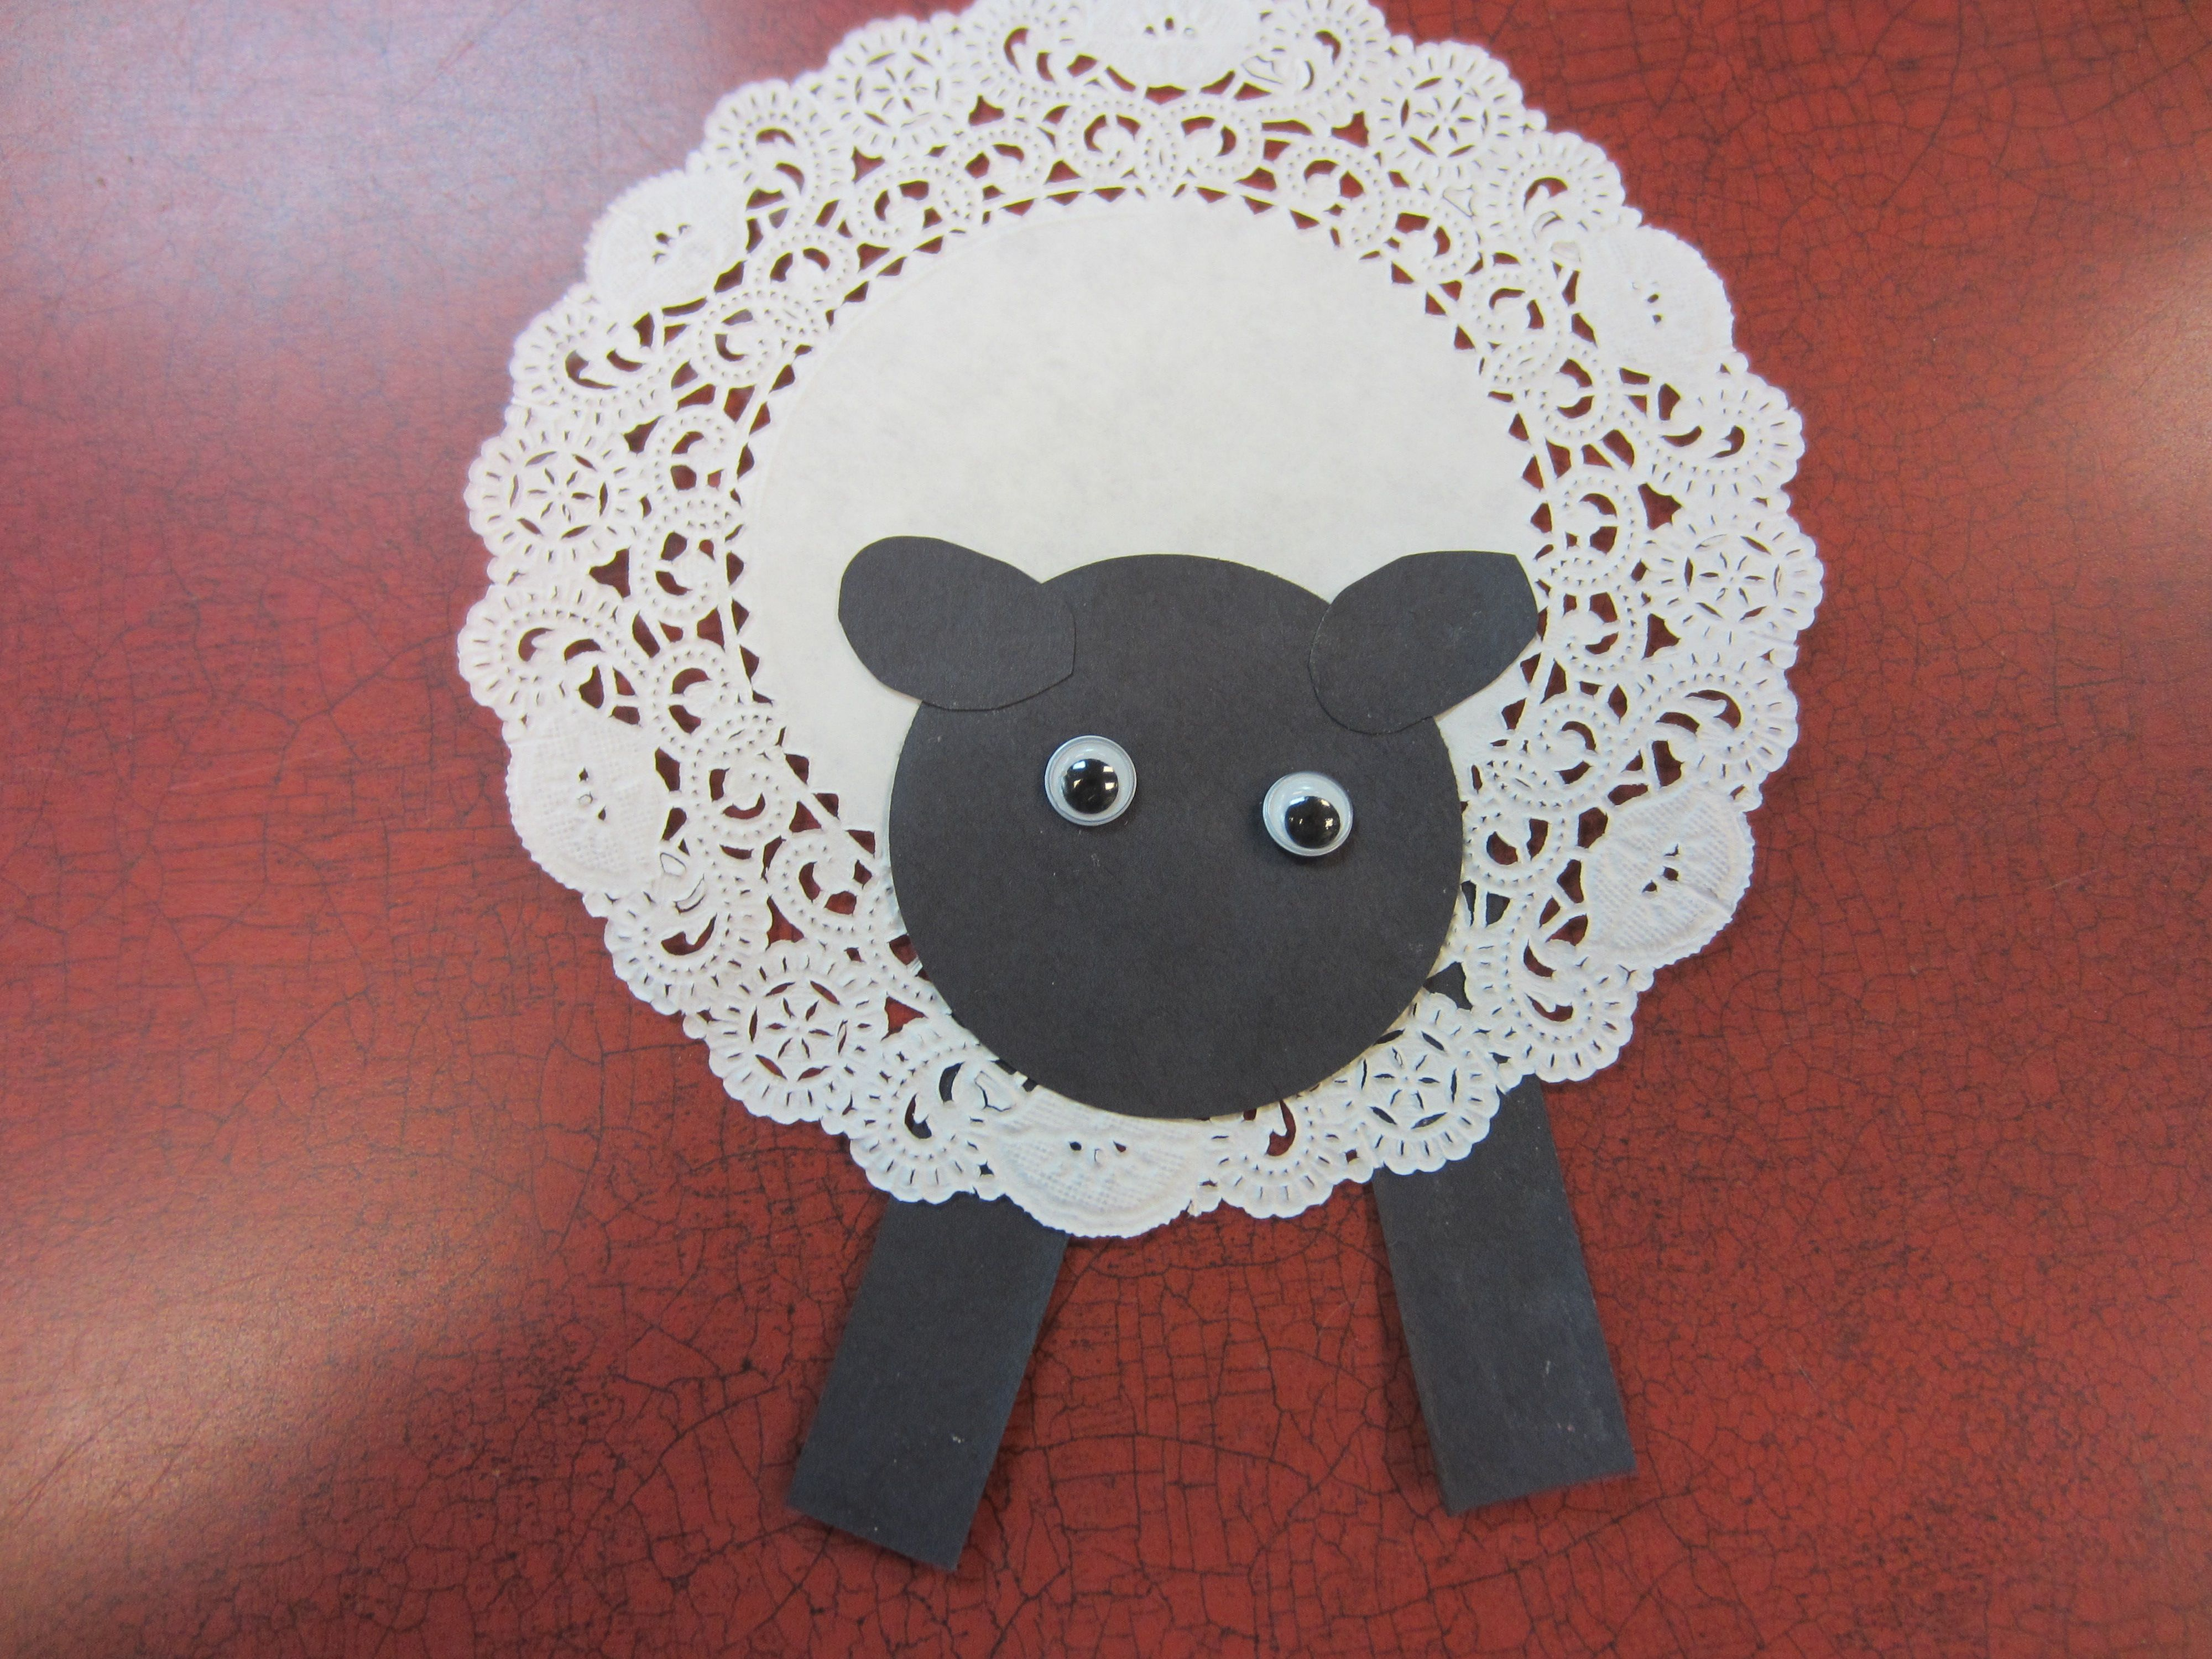 Doily sheep we made this sheep using a paper doily black doily sheep we made this sheep using a paper doily black construction paper jeuxipadfo Image collections